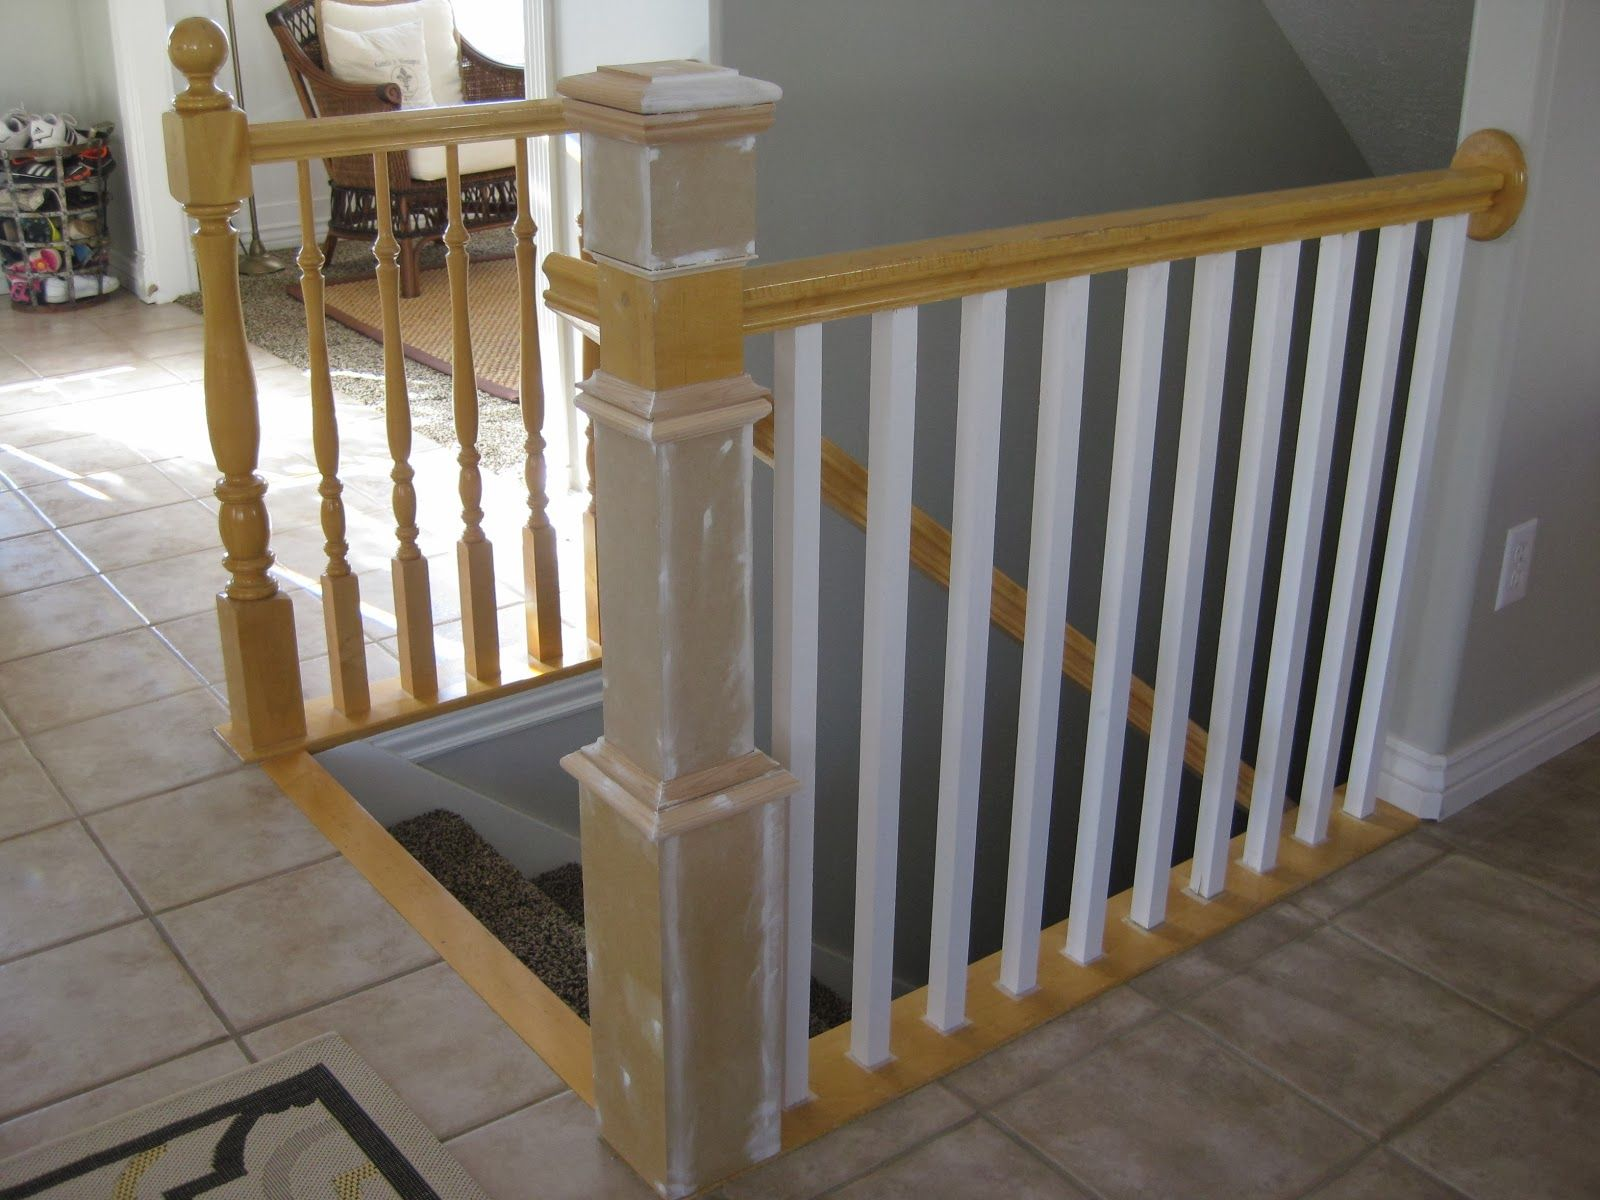 Best Replace Stair Banister Spindles And Newel Post Diy Tda 400 x 300